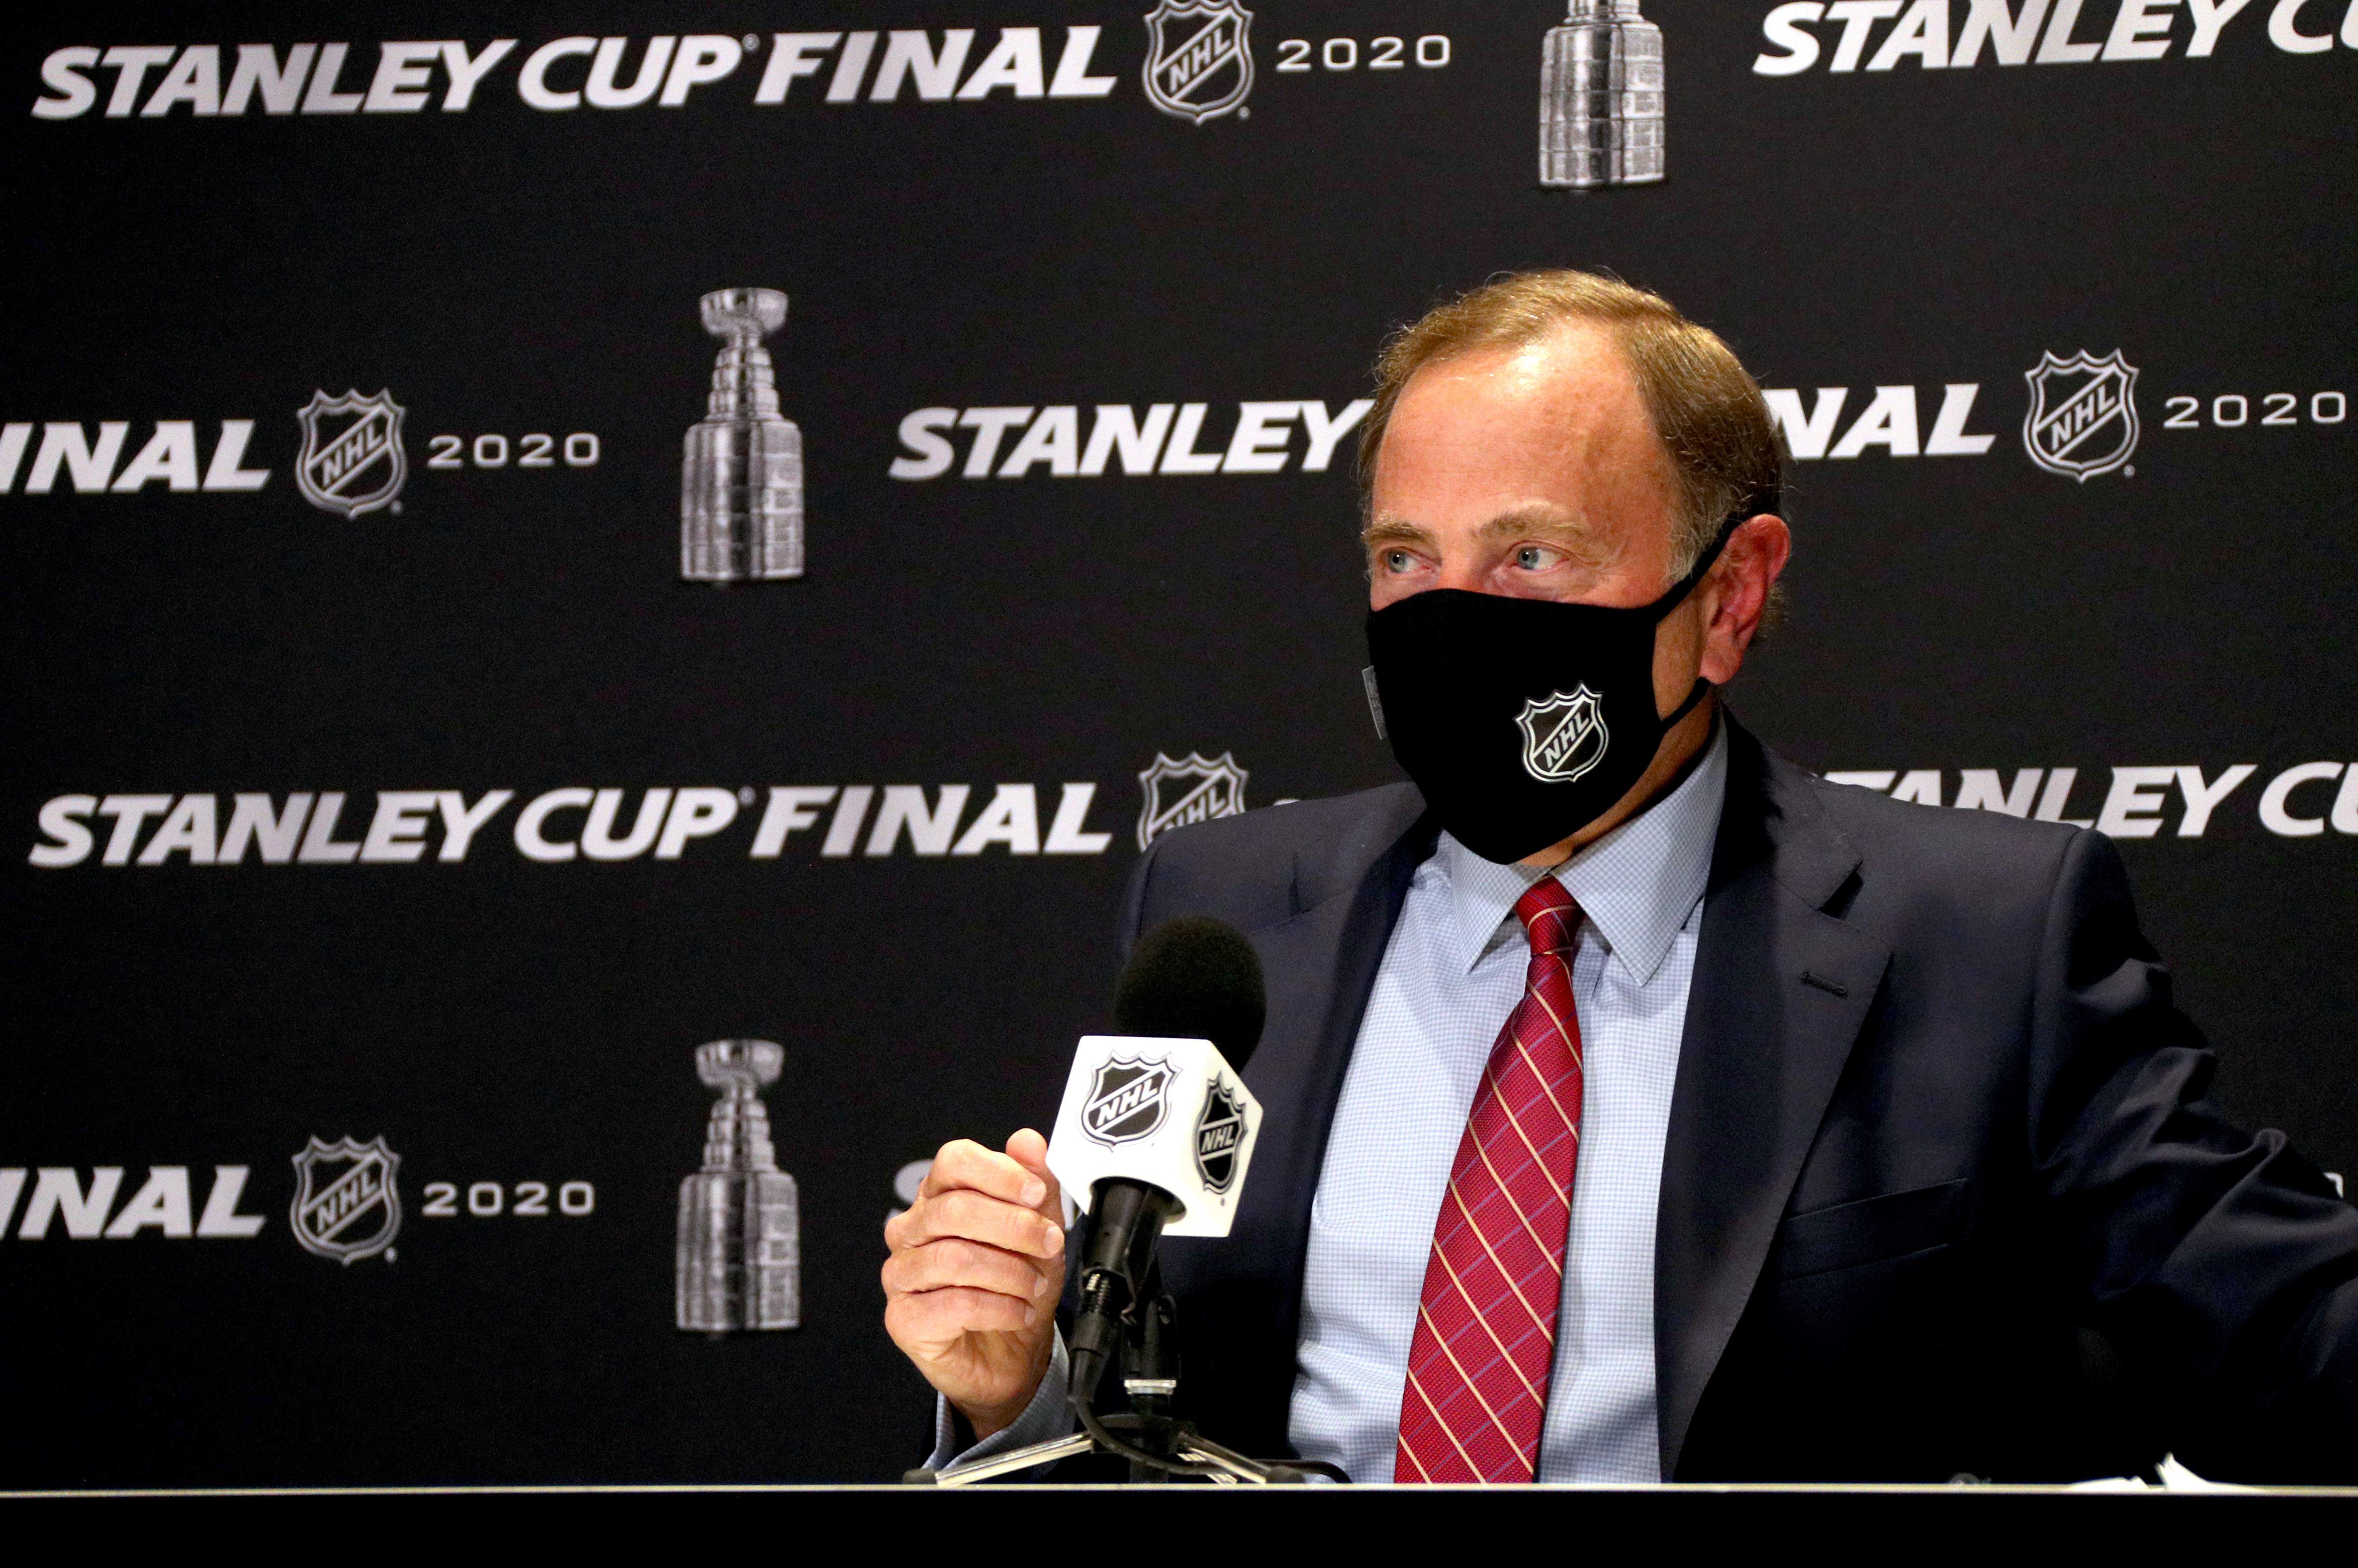 NHL Commissioner Gary Bettman attends a press conference wearing a mask before Game One of the NHL Stanley Cup Final between the Dallas Stars and the Tampa Bay Lightning at Rogers Place on September 19, 2020 in Edmonton, Alberta.